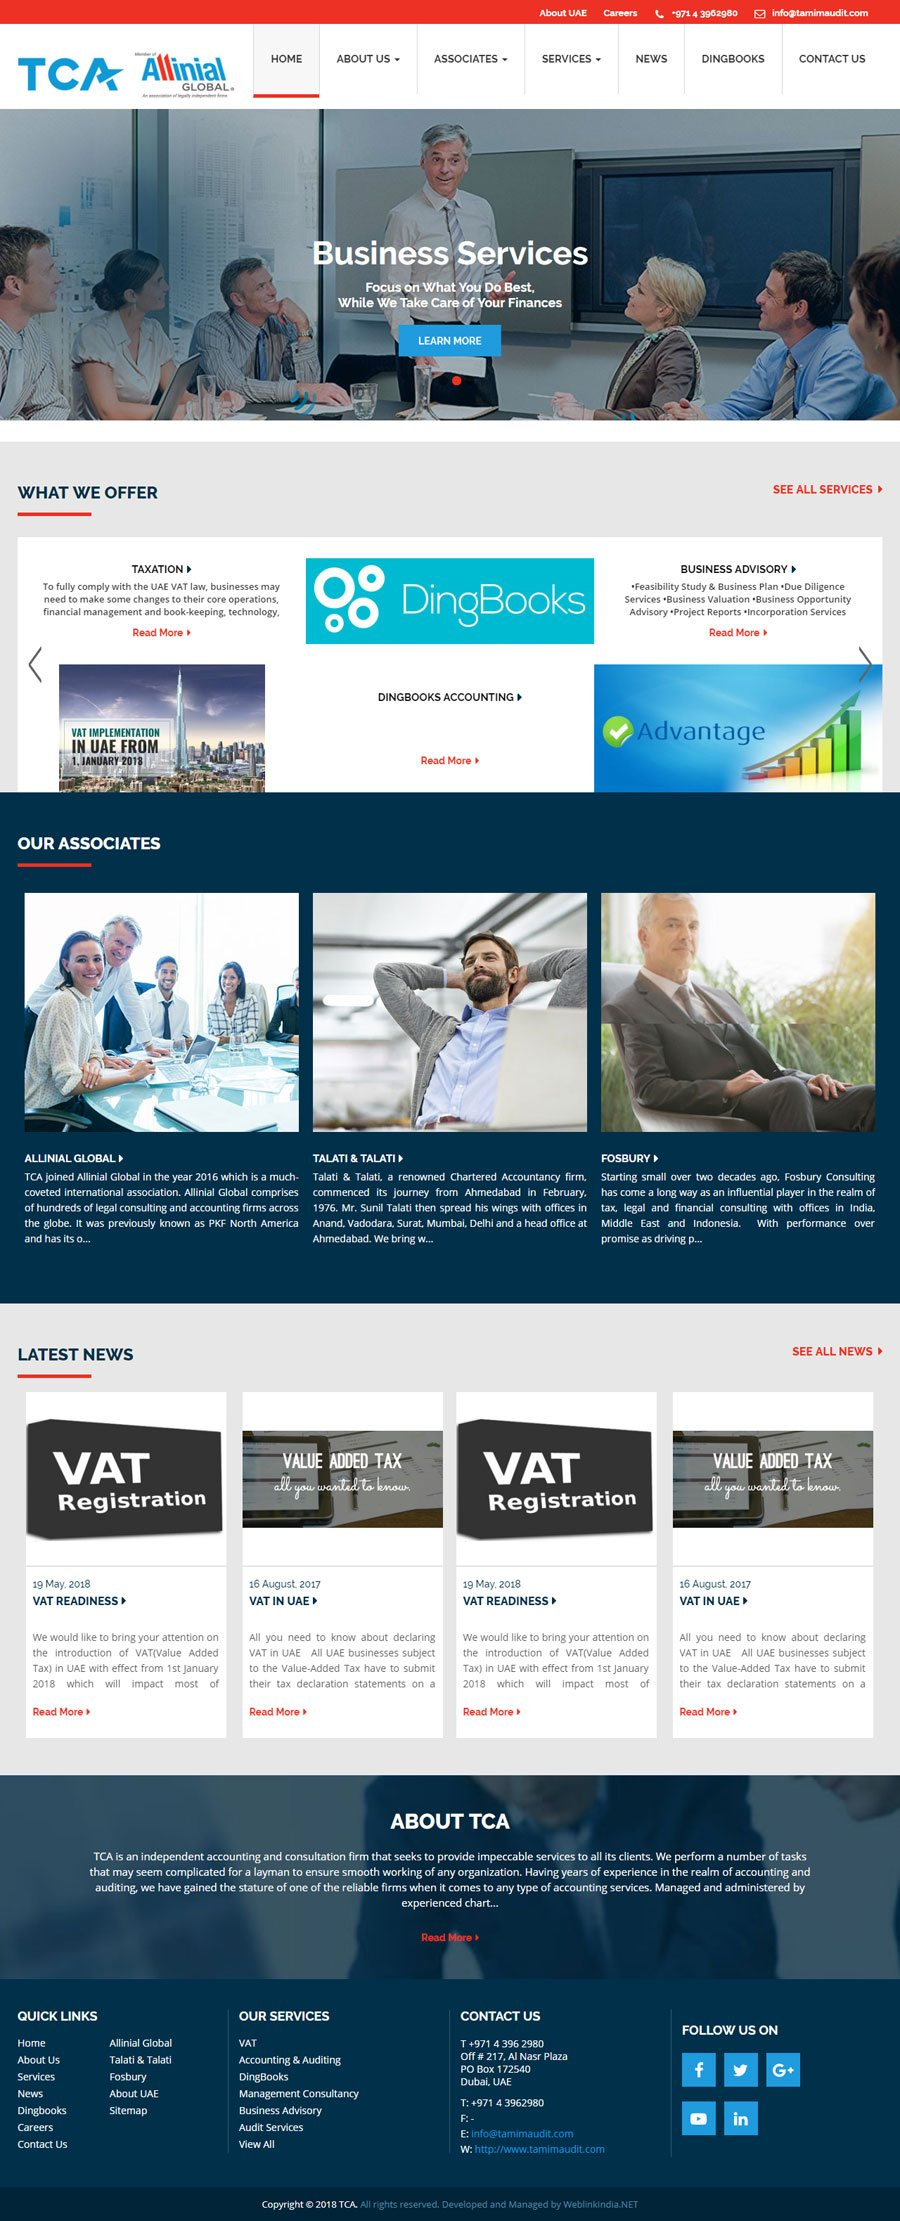 TCA United Arab Emirates Web Design